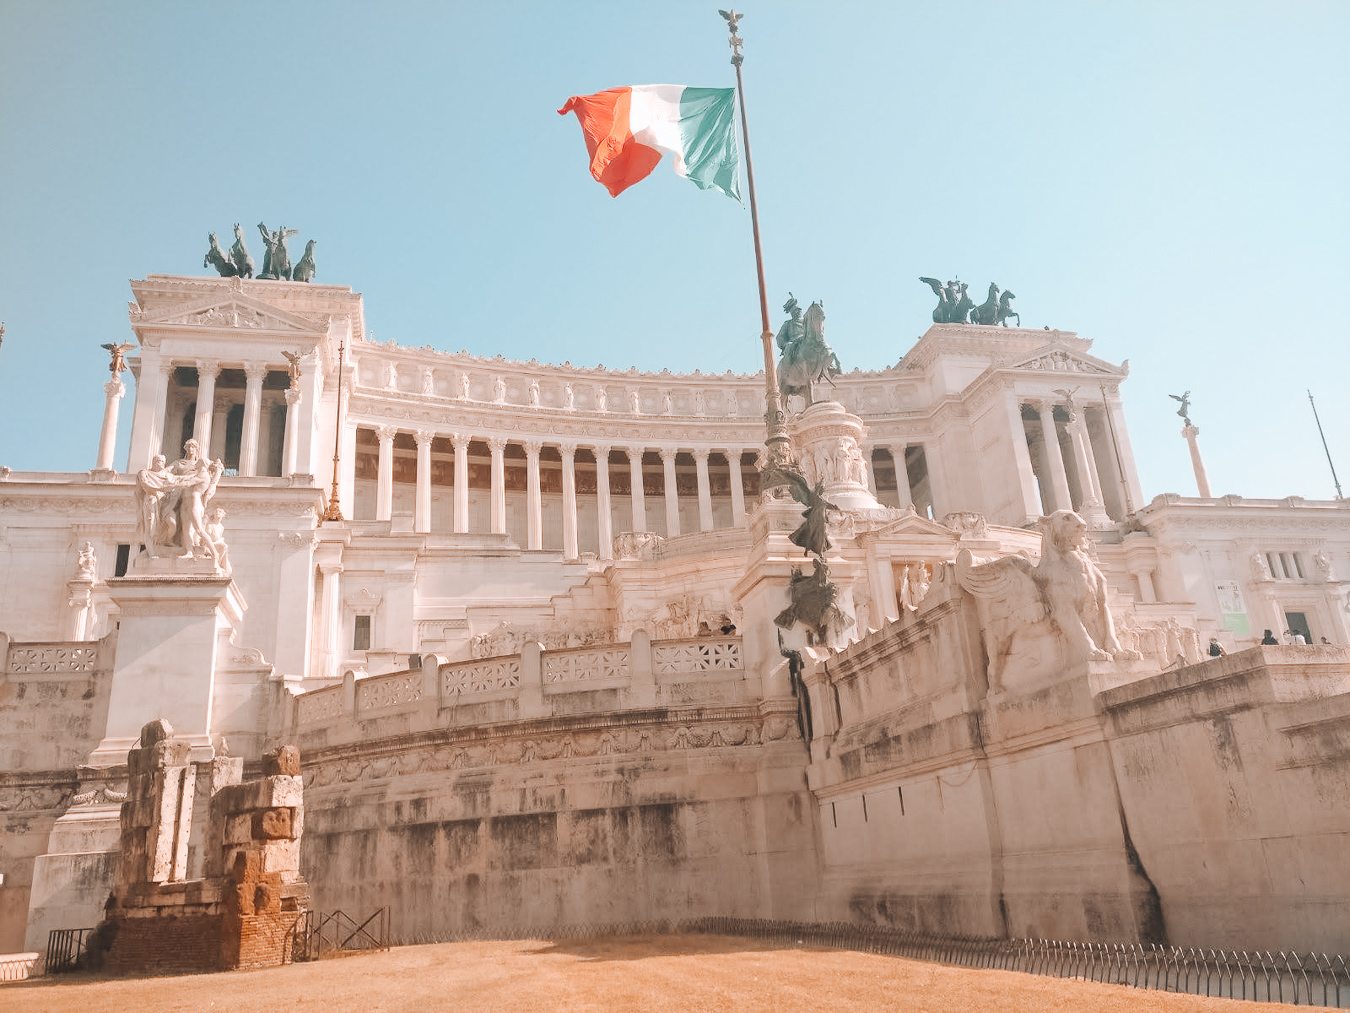 National Monument of Vittorio Emanuele II in Rome